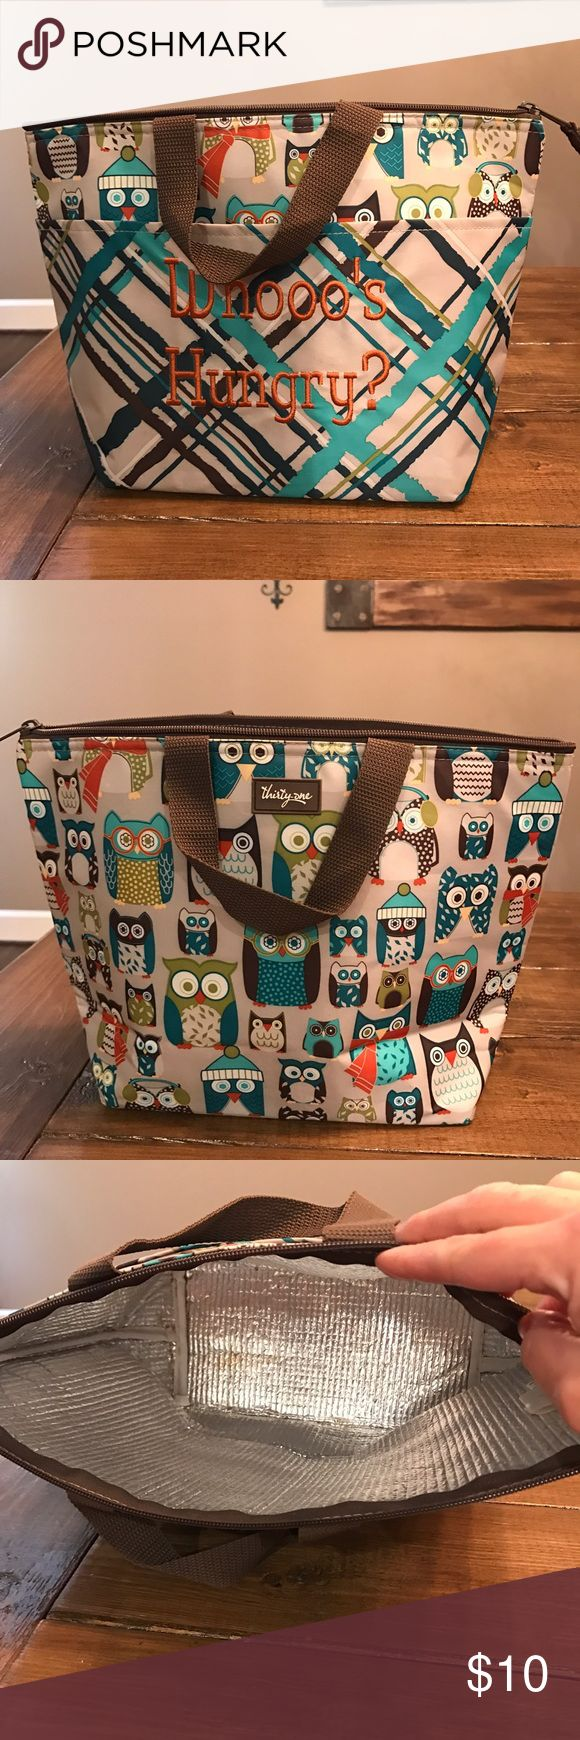 Thirty One lunch bag Used lunch bag by Thirty One. Looks new though . thirty one Bags Totes